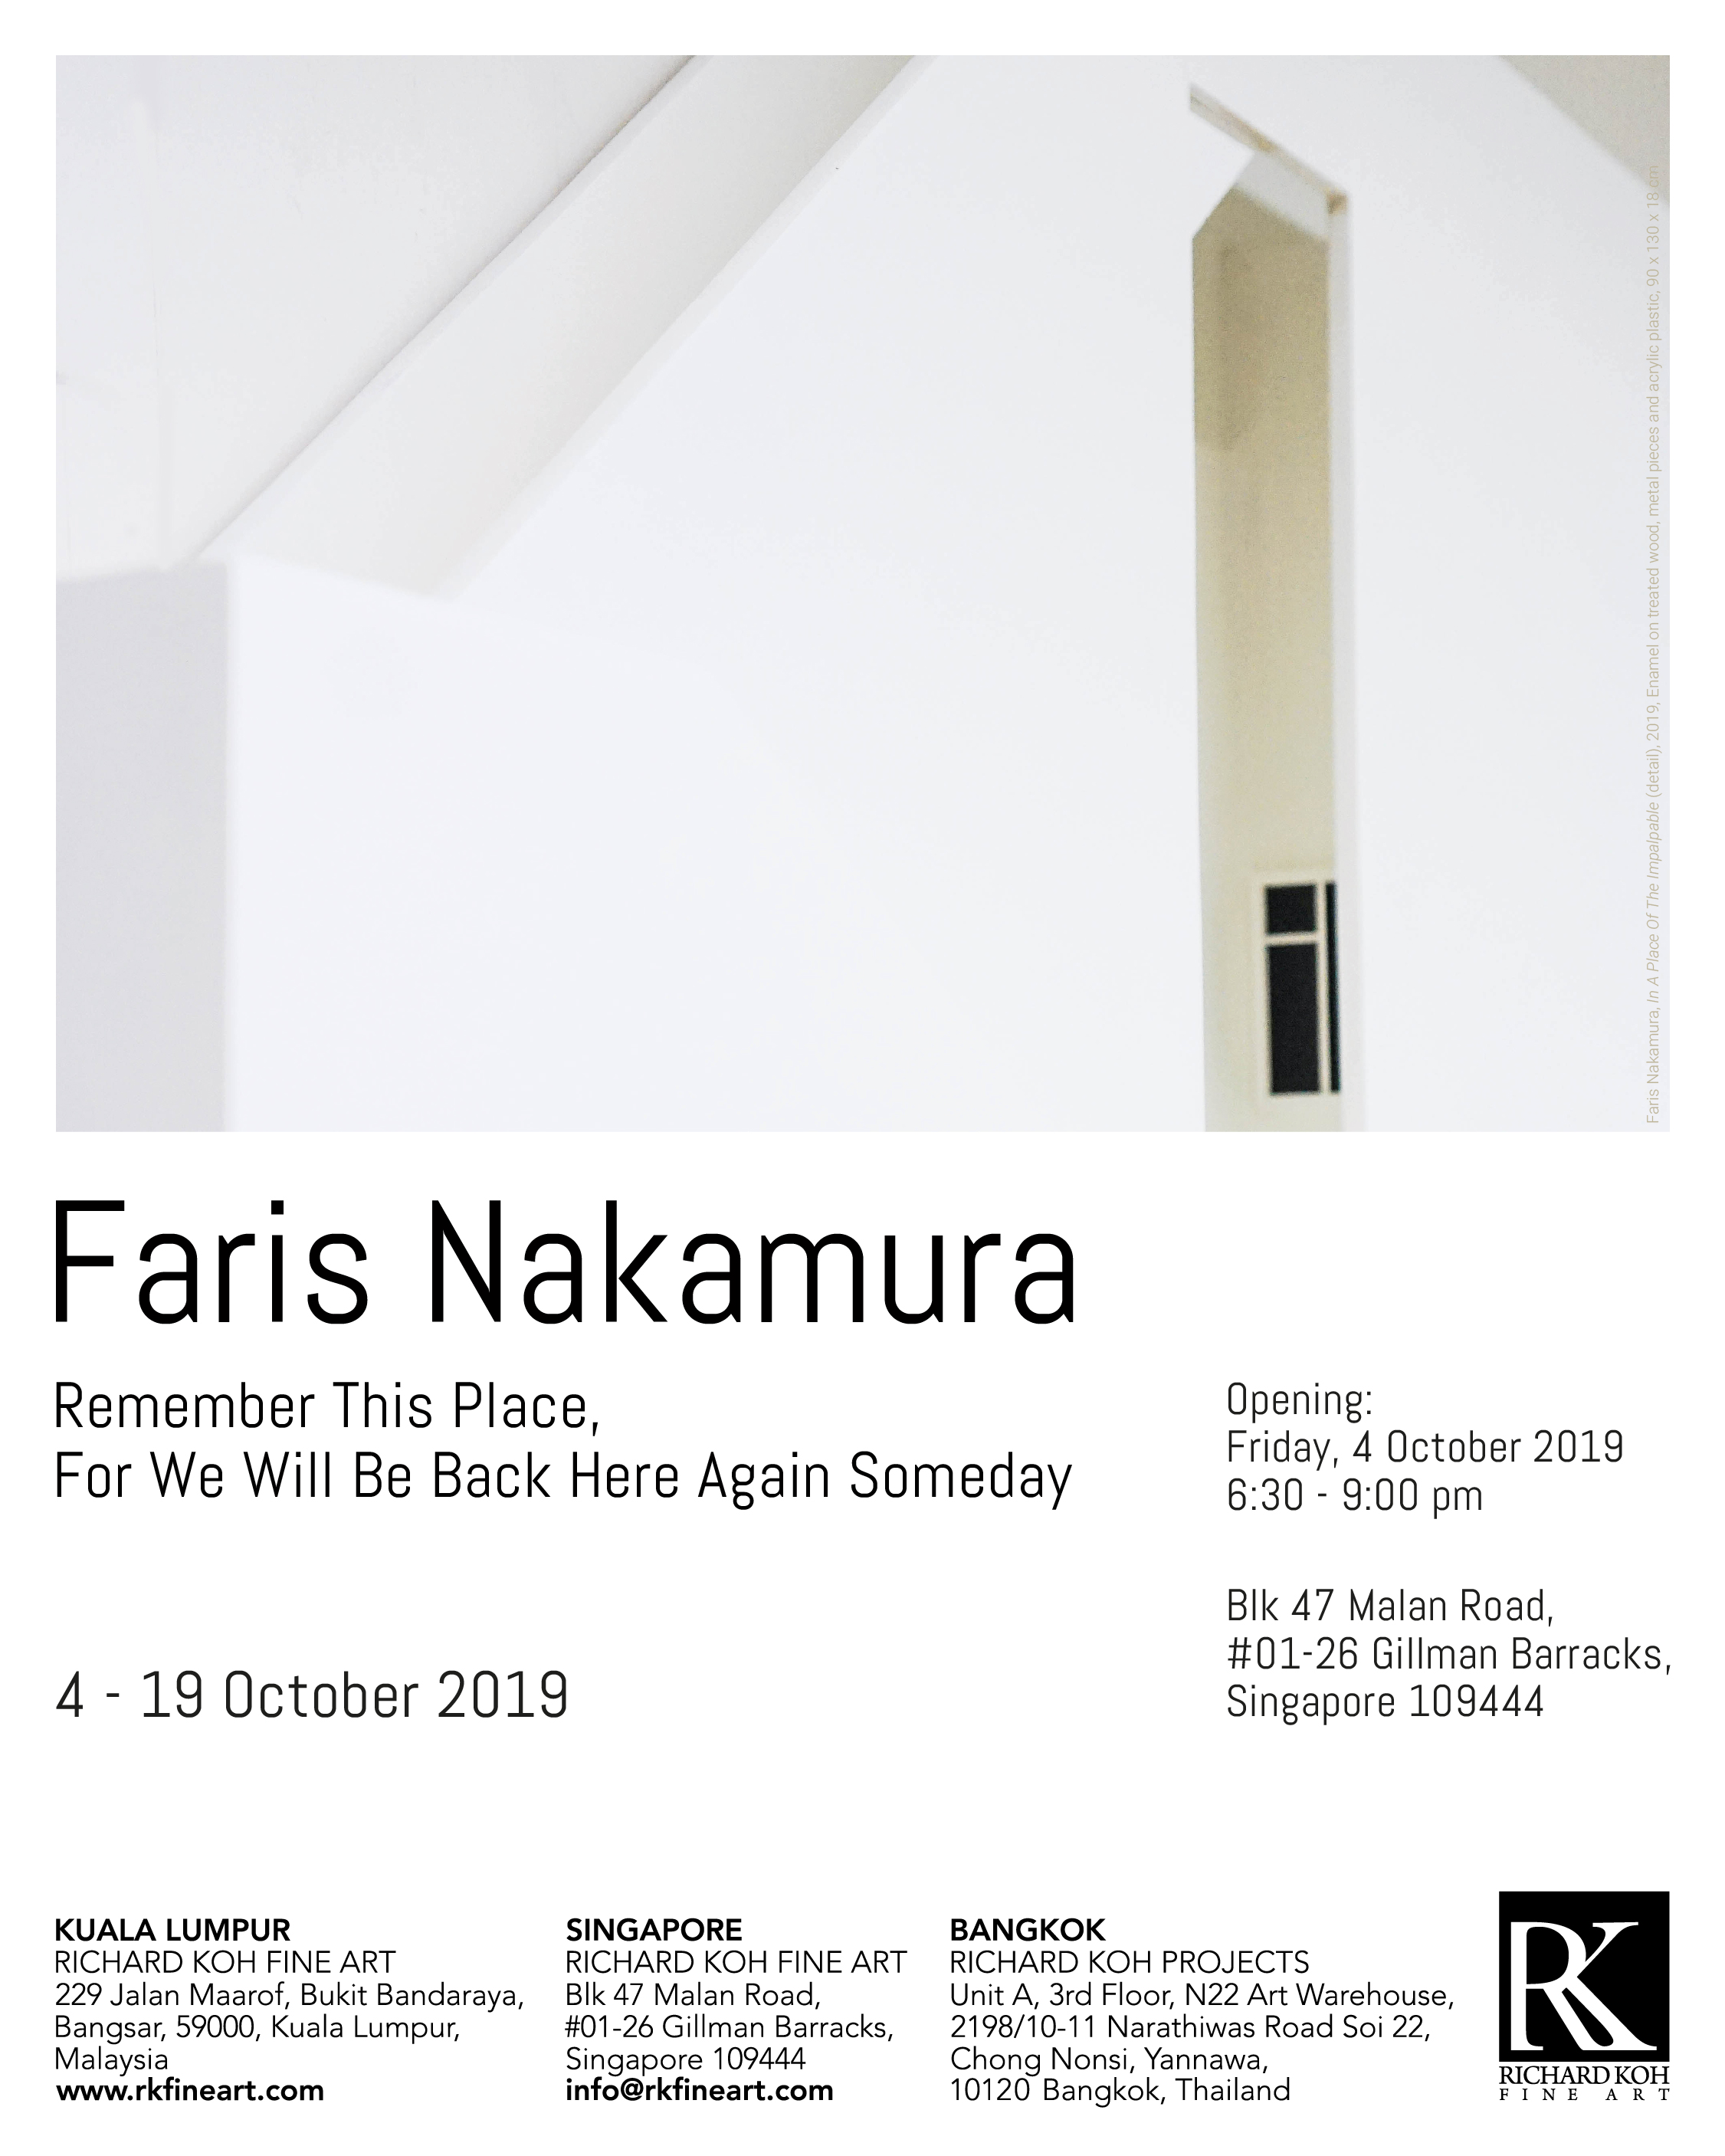 Faris Nakamura – Remember This Place, For We Will Be Back Here Again Someday